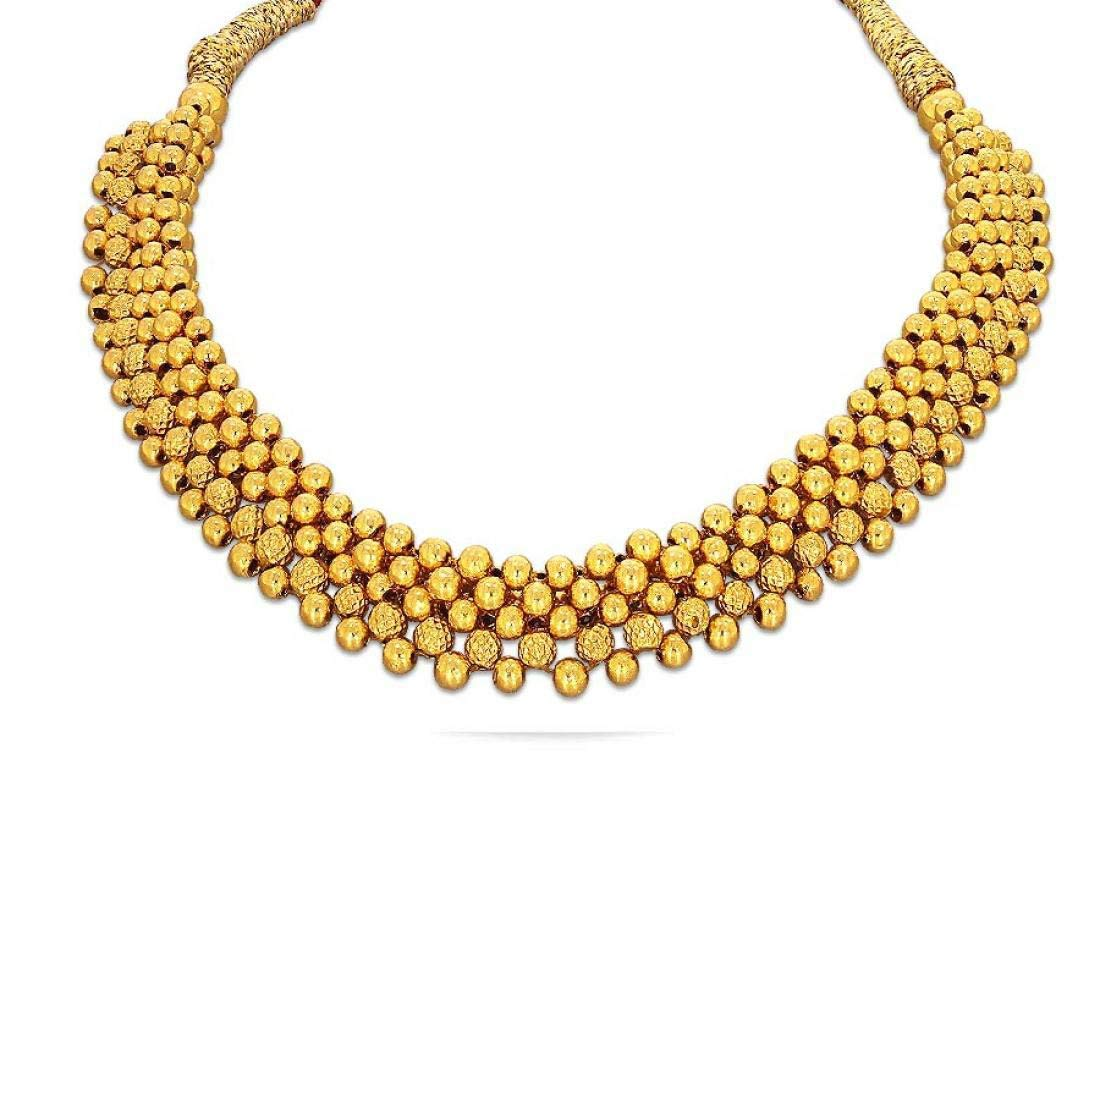 Buy Candere By Kalyan Jewellers 22kt Yellow Gold Choker Necklace For Women At Amazon In